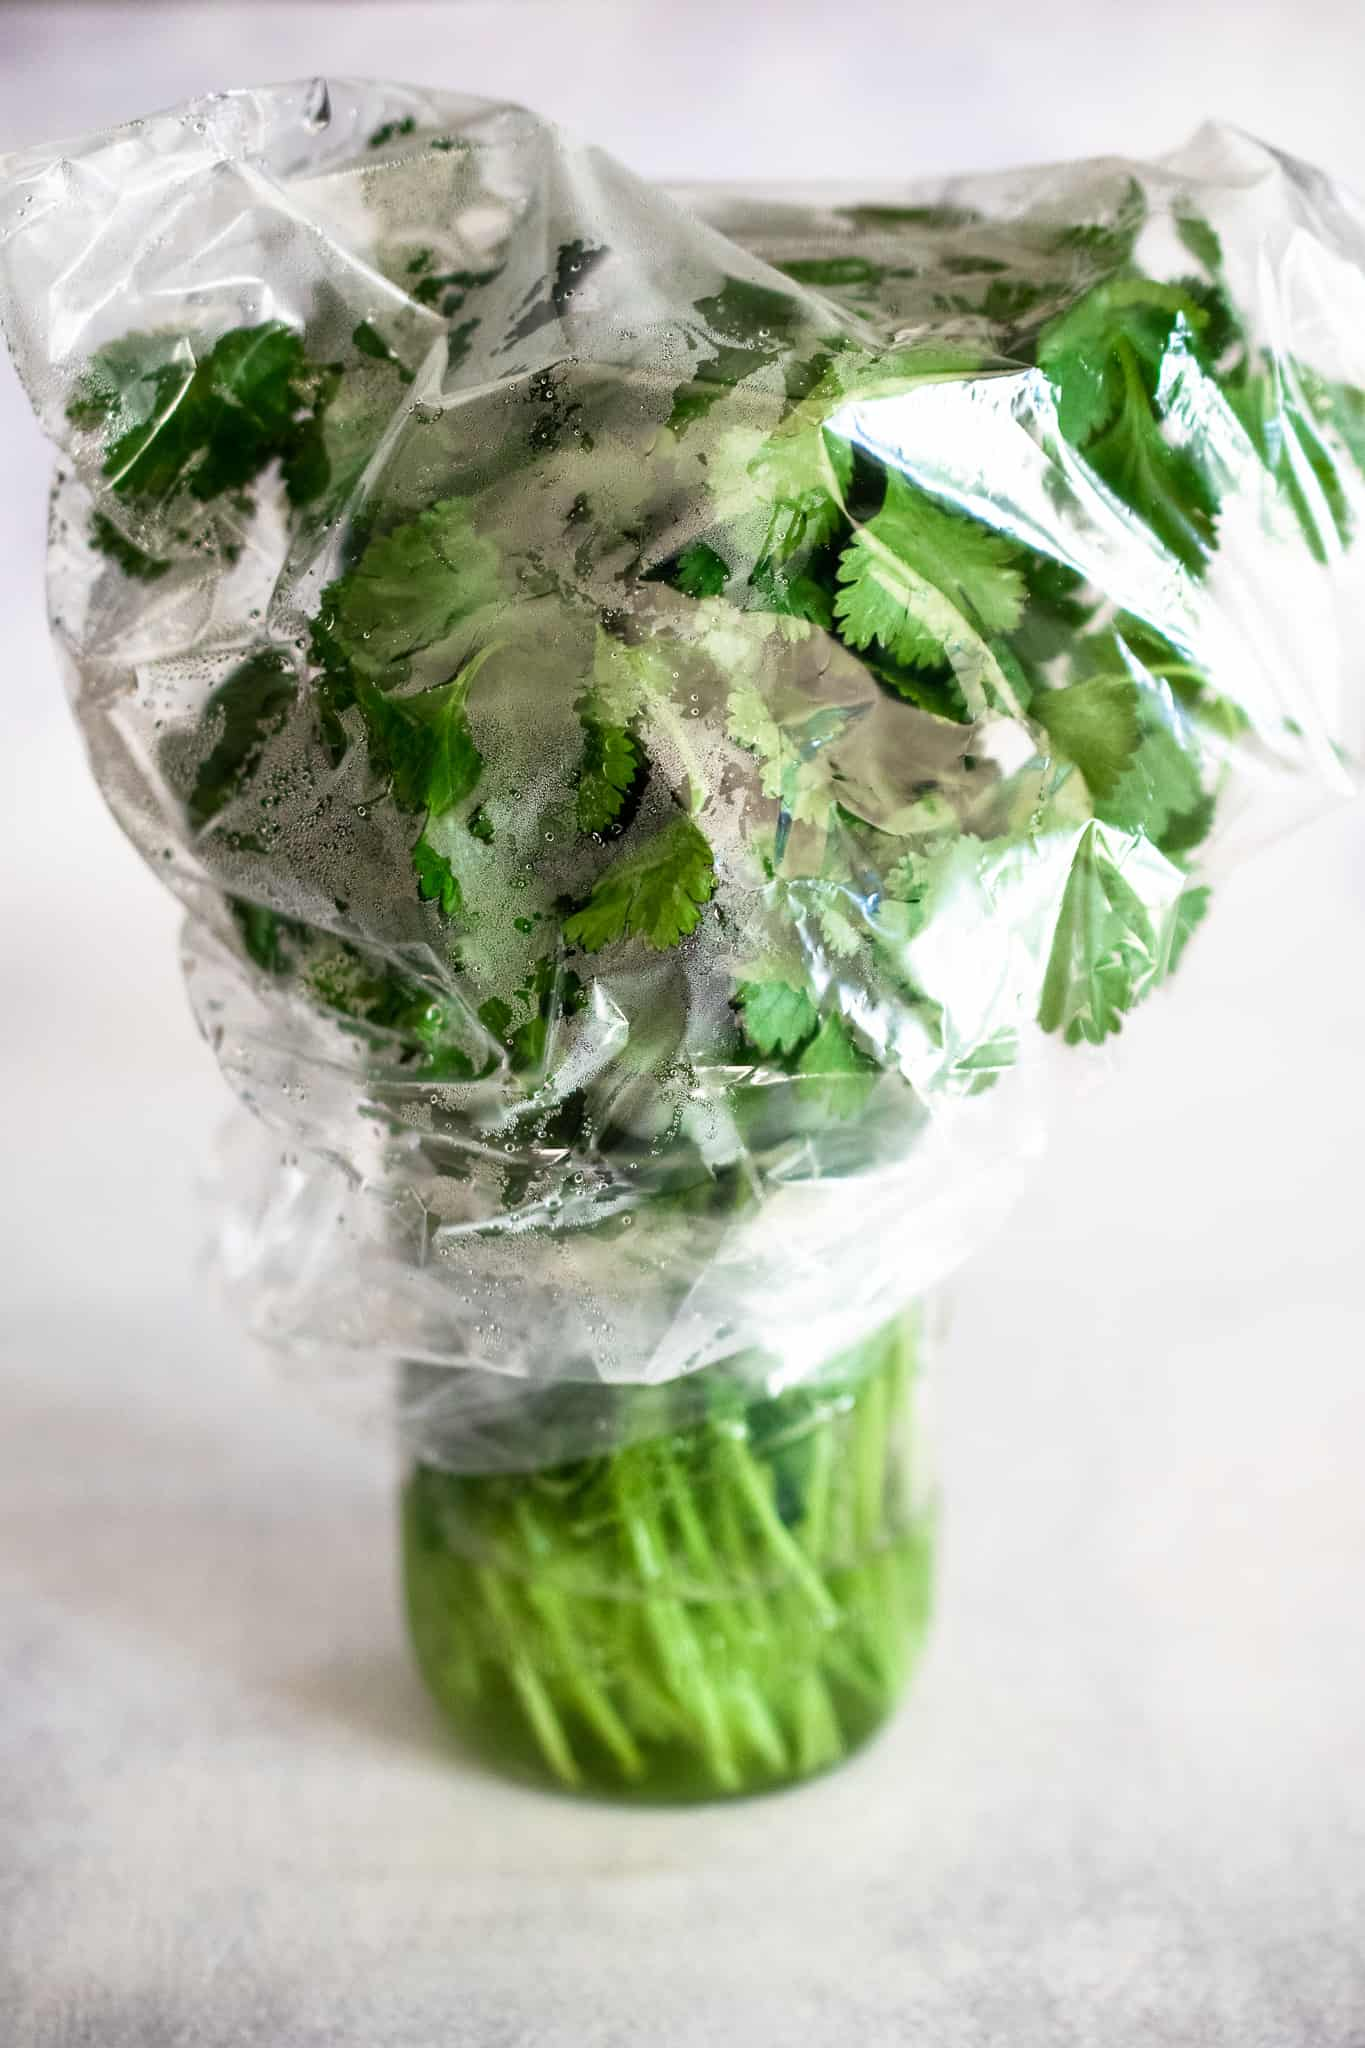 mason jar of fresh cilantro with an inch of water covered loosely with a clear plastic bag